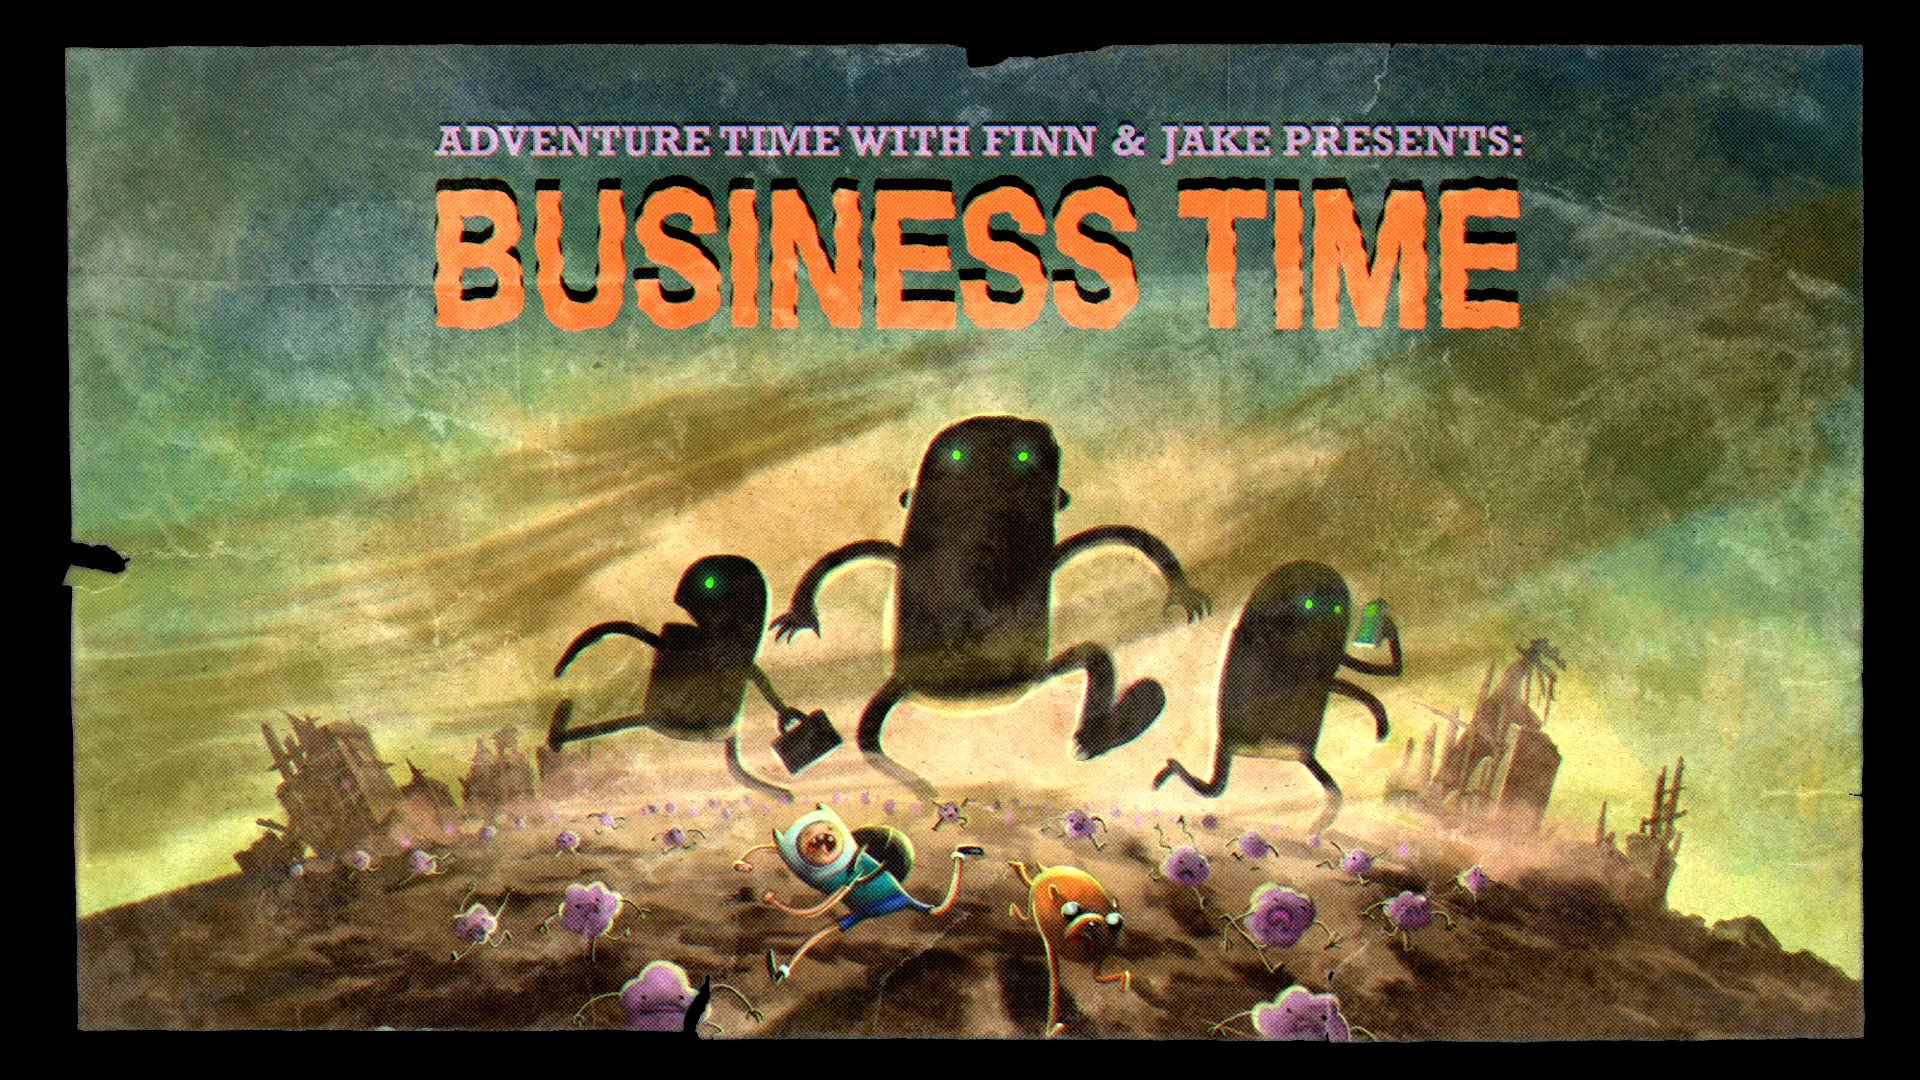 File:Titlecard S1E8 businesstime.jpg